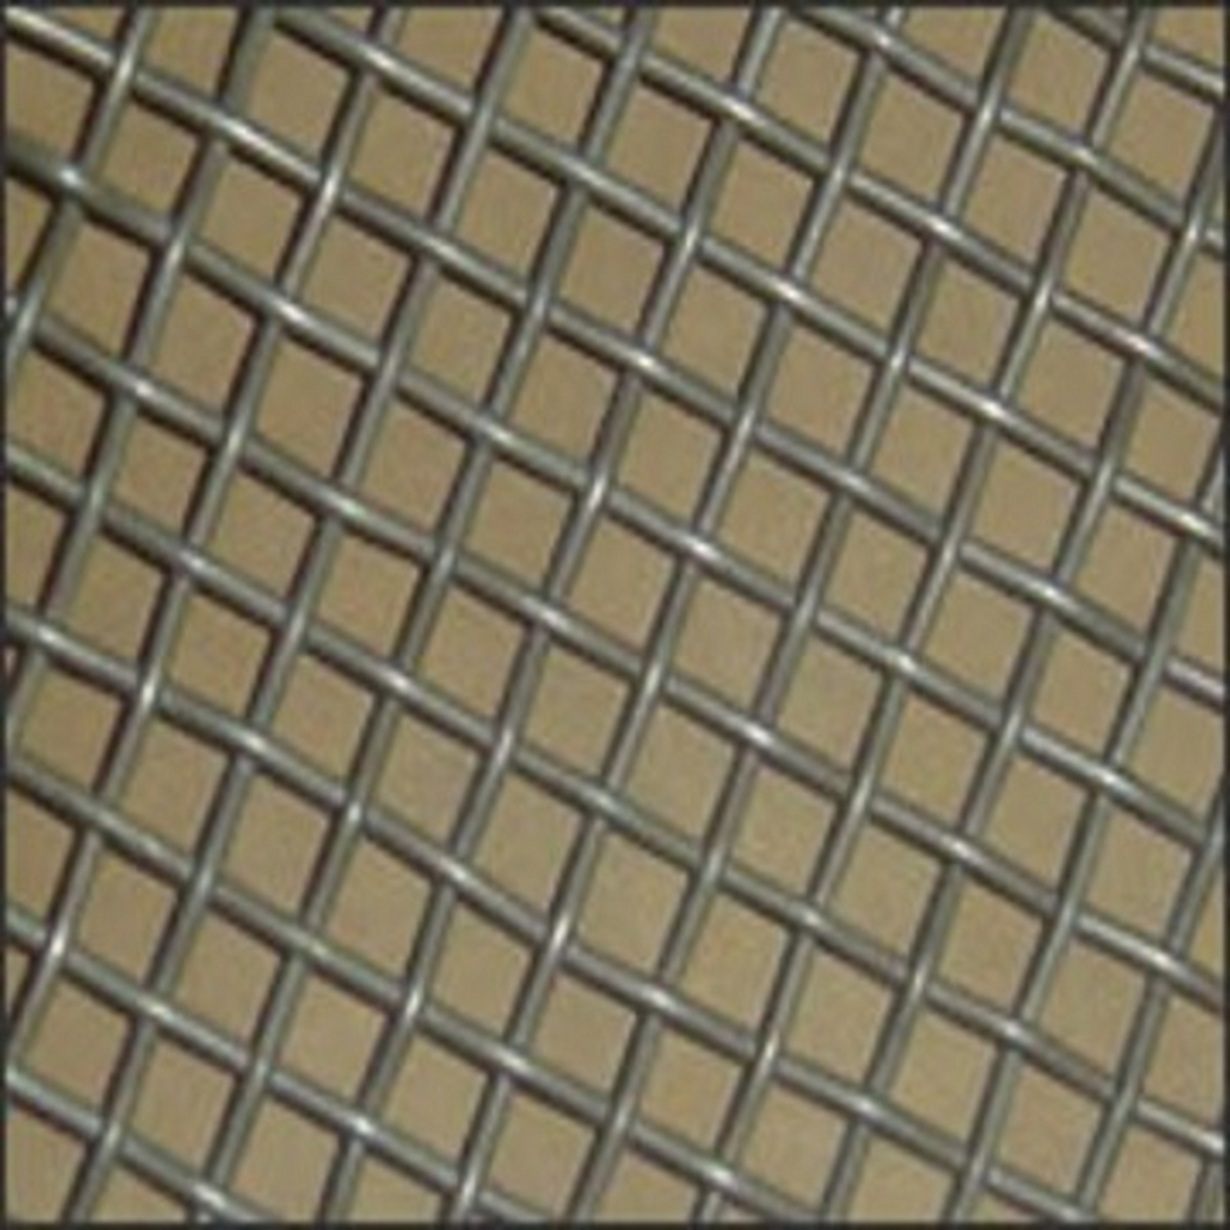 China galvanized square mesh xms photos pictures